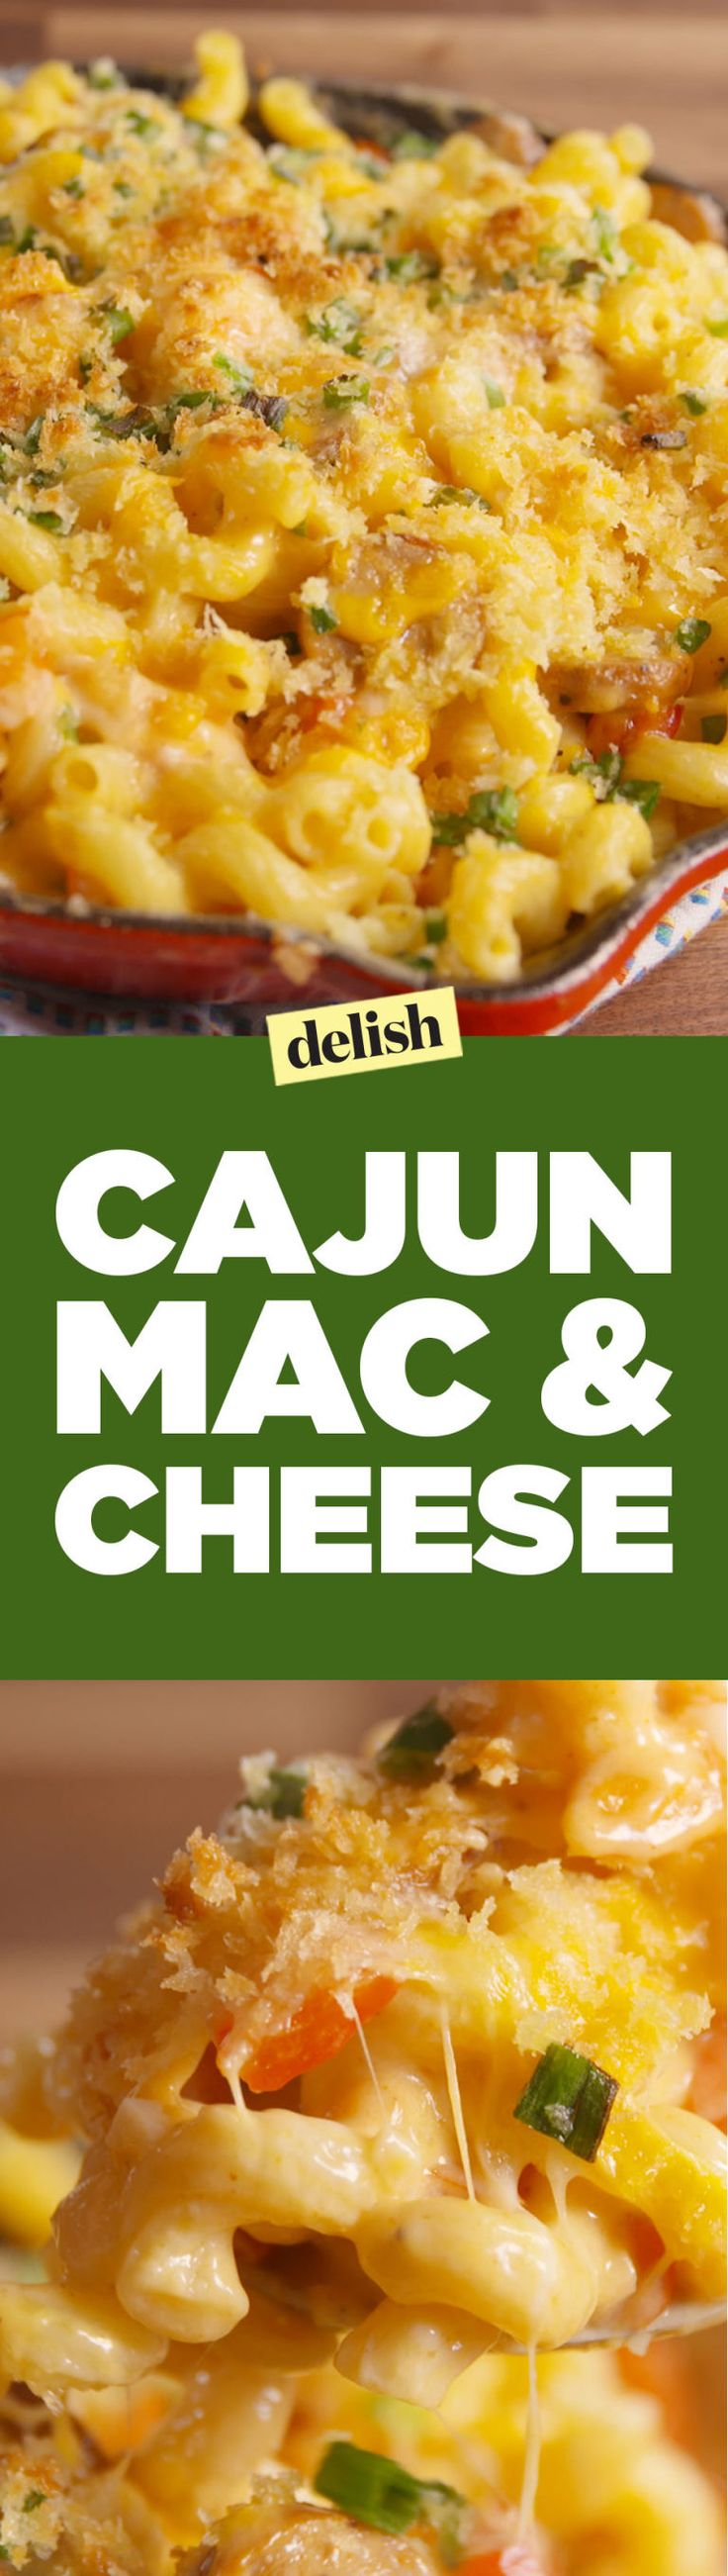 Cajun Mac & Cheese Is One Of The Best Things We've Ever Made  - Delish.com